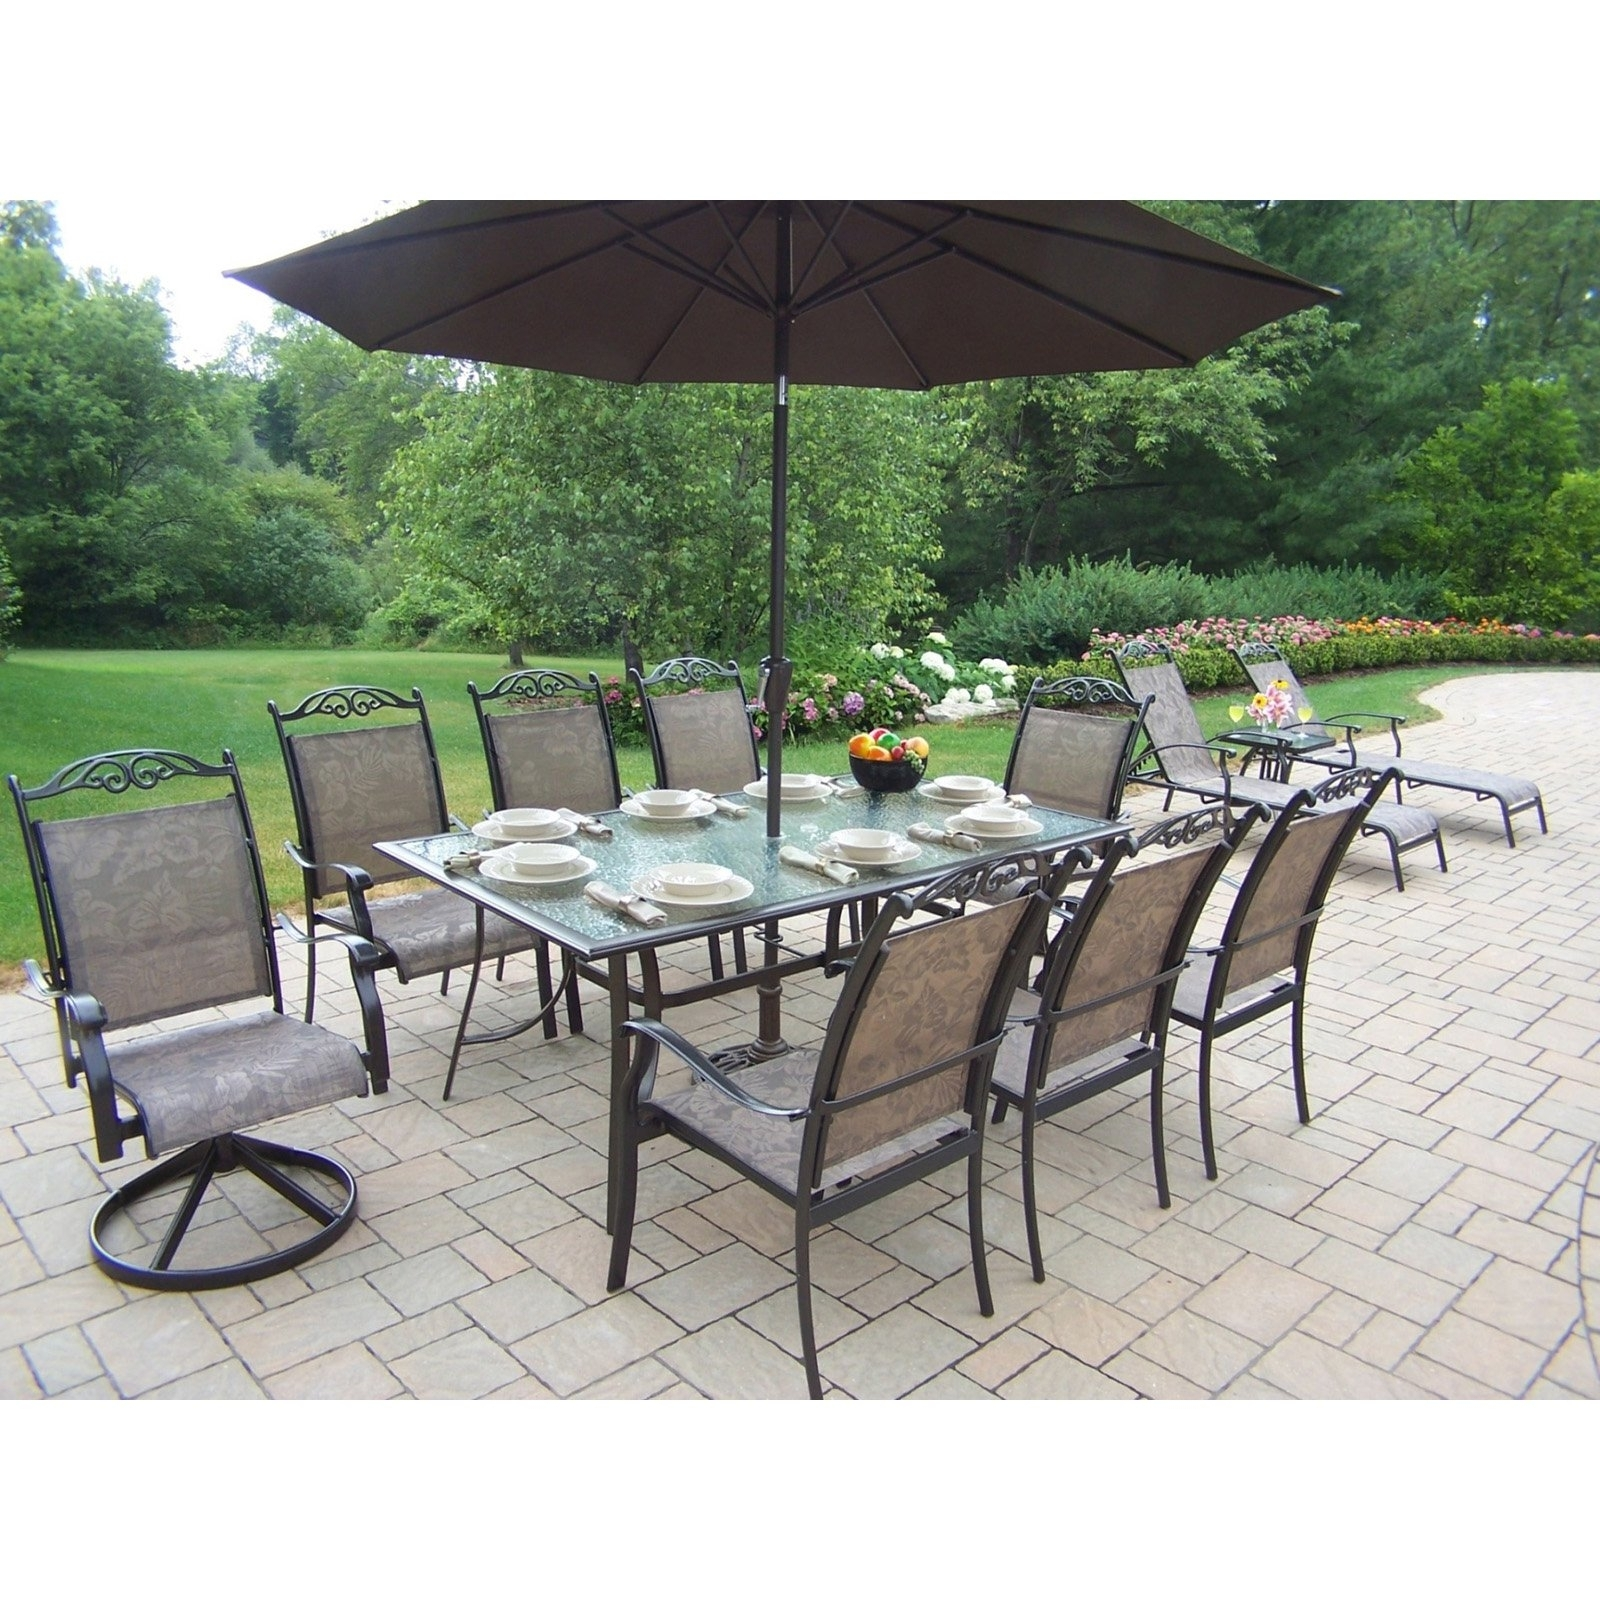 Most Recently Released Patio Furniture Walmart Patio Furniture Sets Patio Dining Luxury Regarding Patio Furniture Sets With Umbrellas (View 9 of 20)